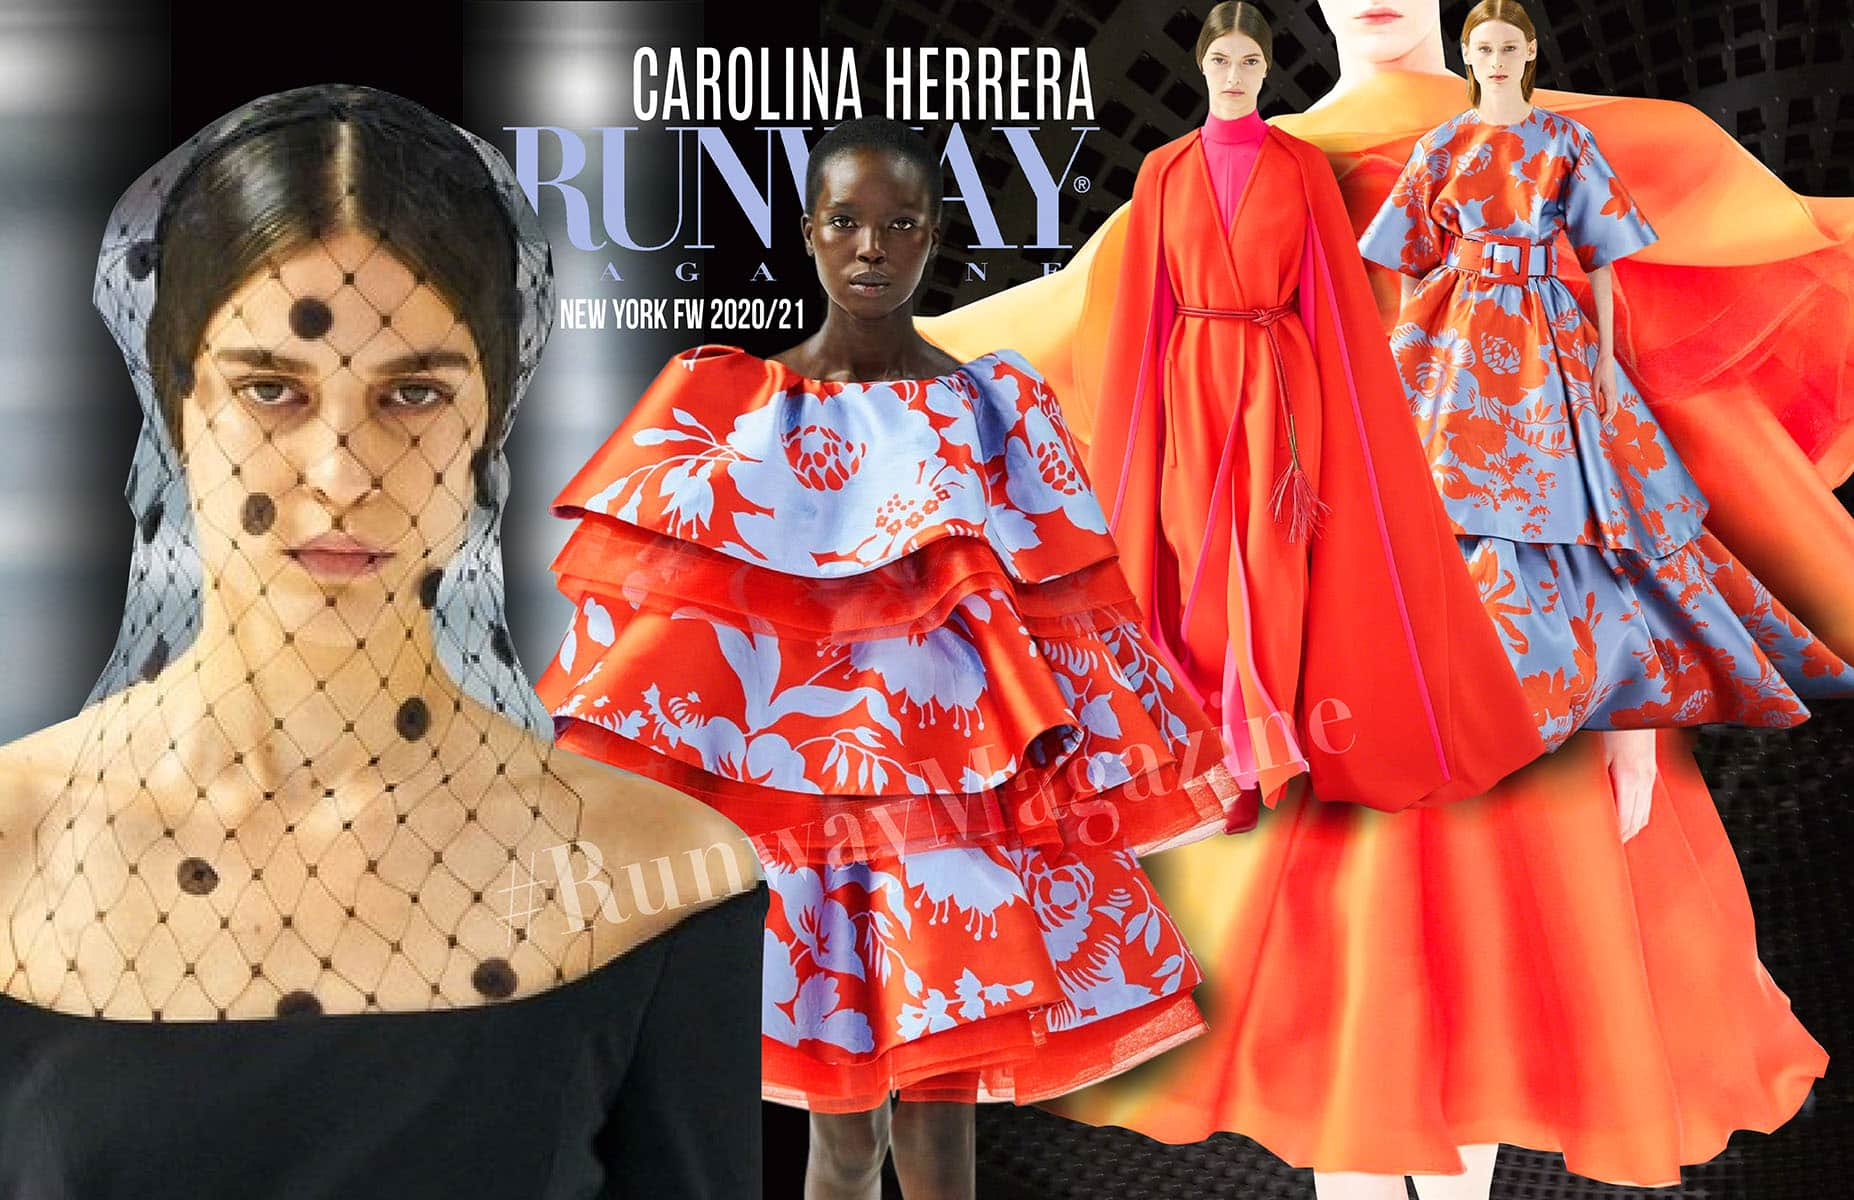 Carolina Herrera Fall-Winter 2020-2021 New York by RUNWAY MAGAZINE